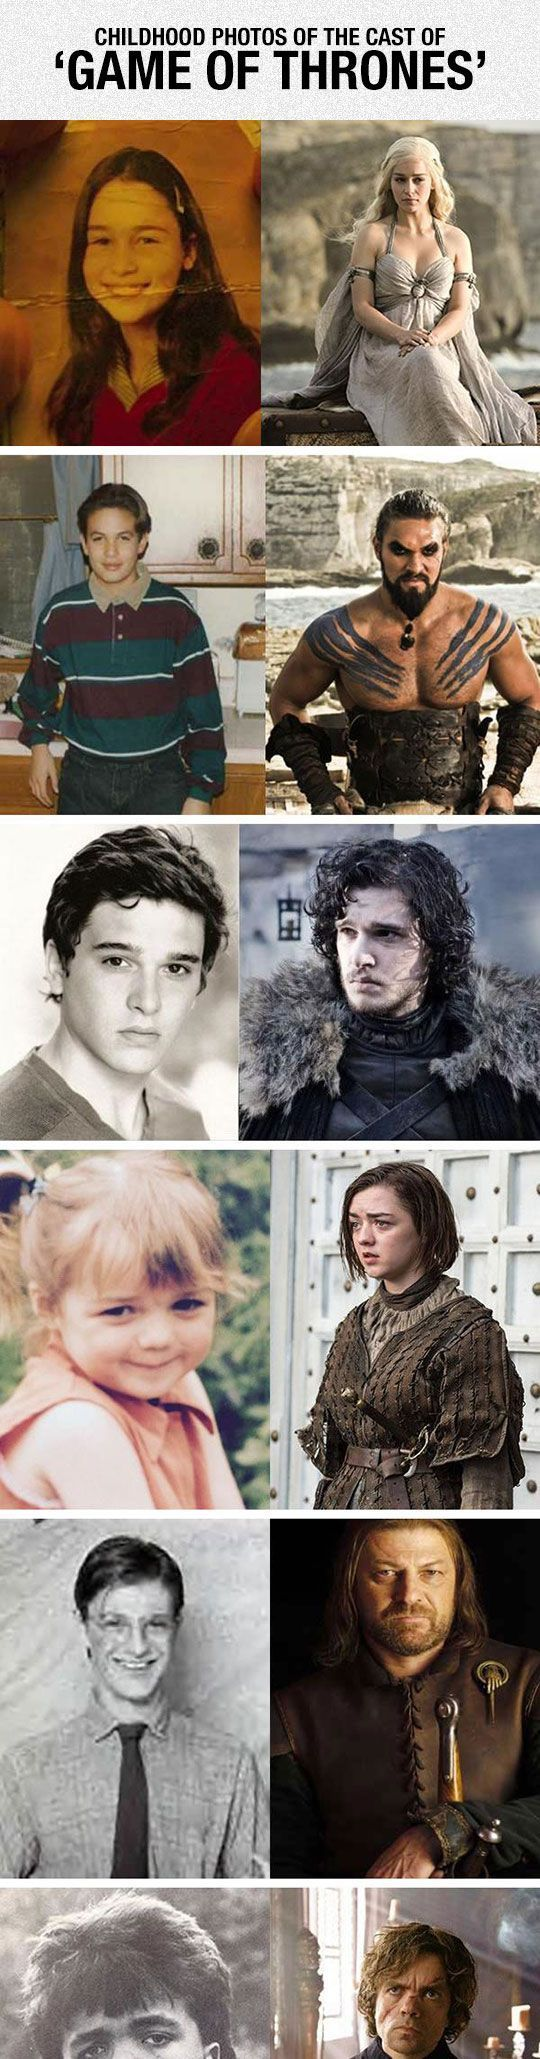 The Cast Of Game Of Thrones while in their youth